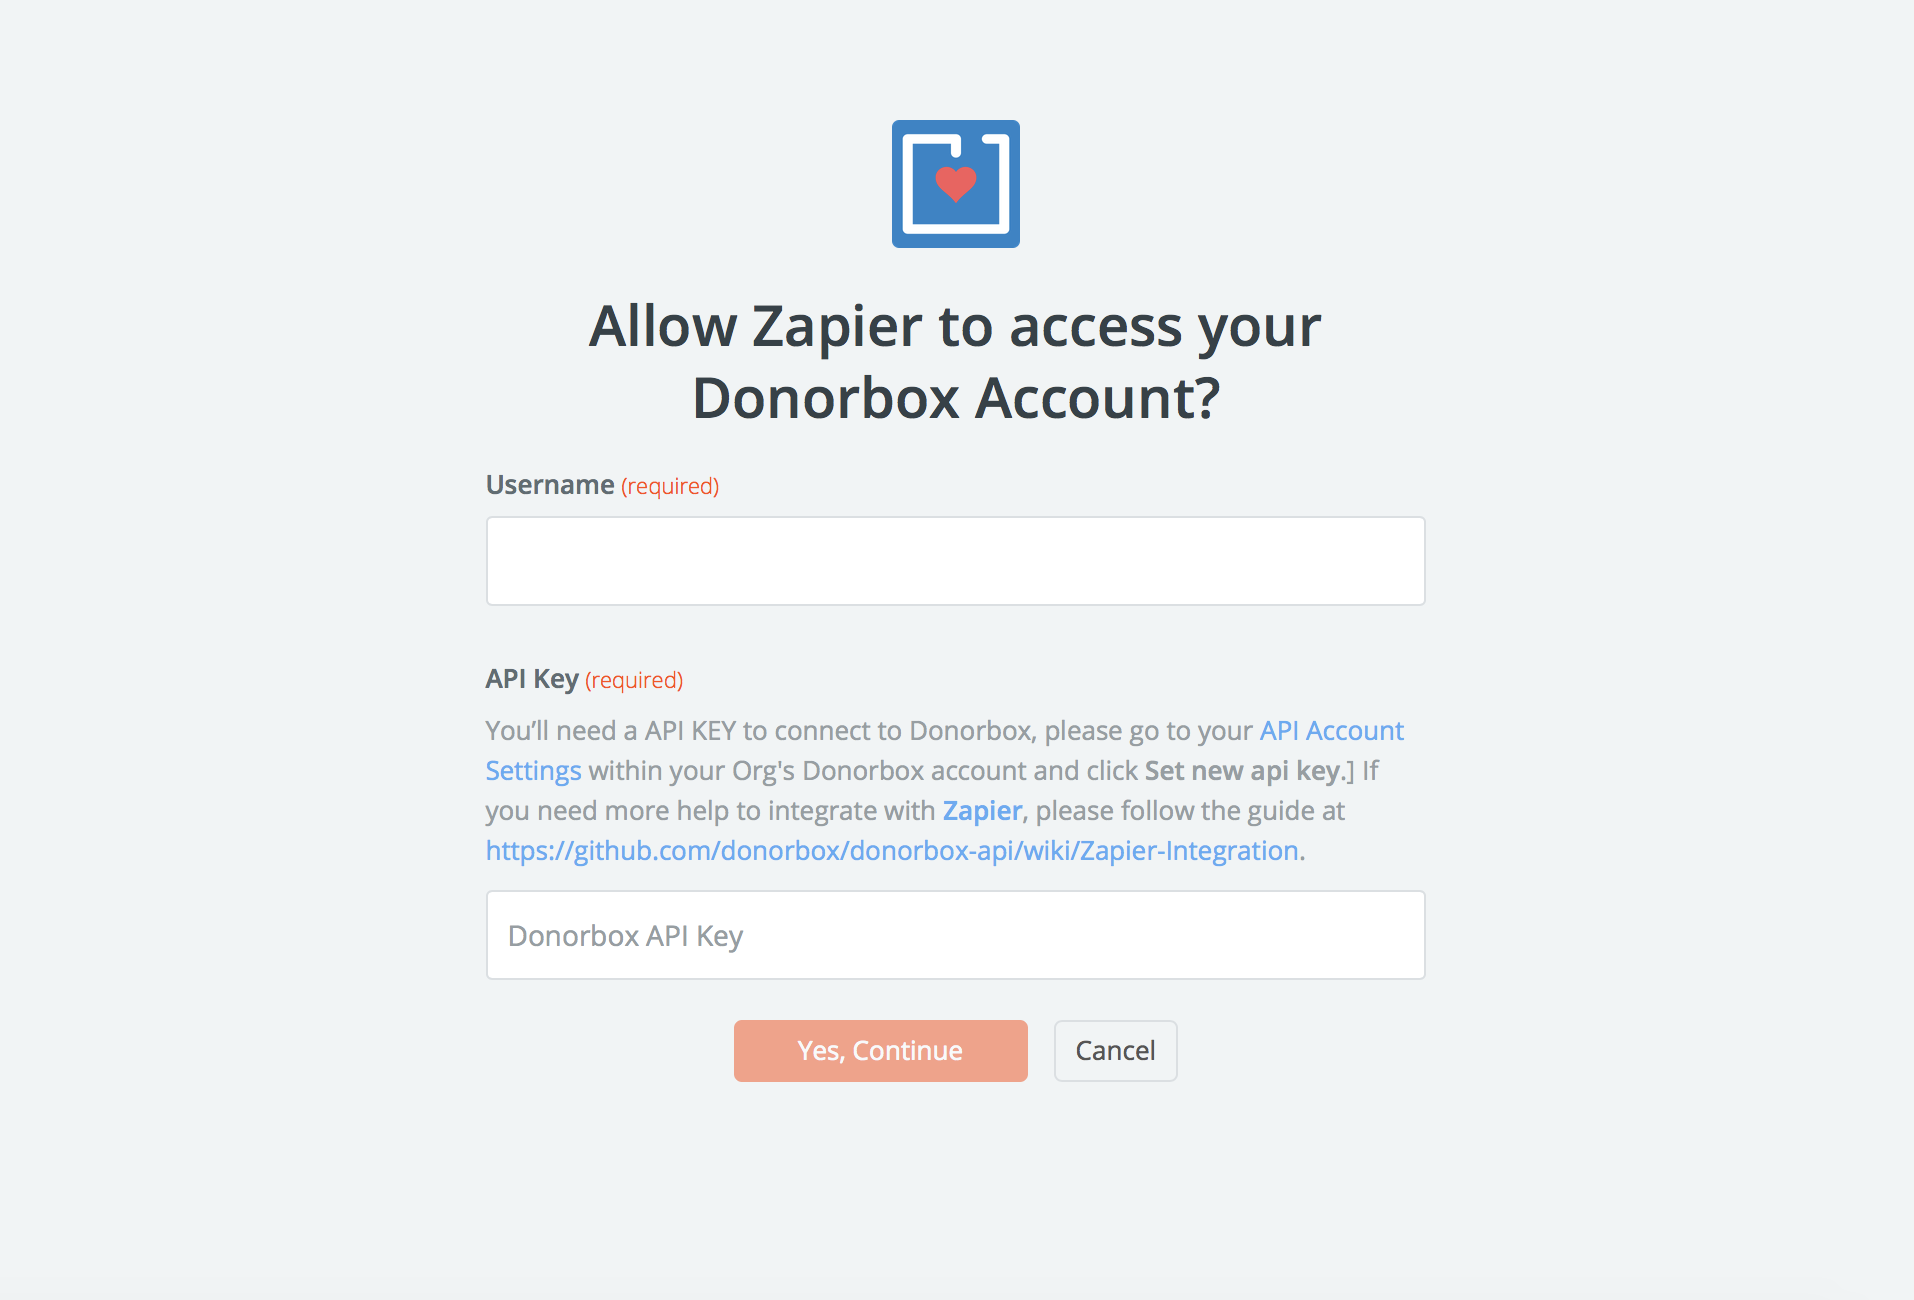 Donorbox username and password